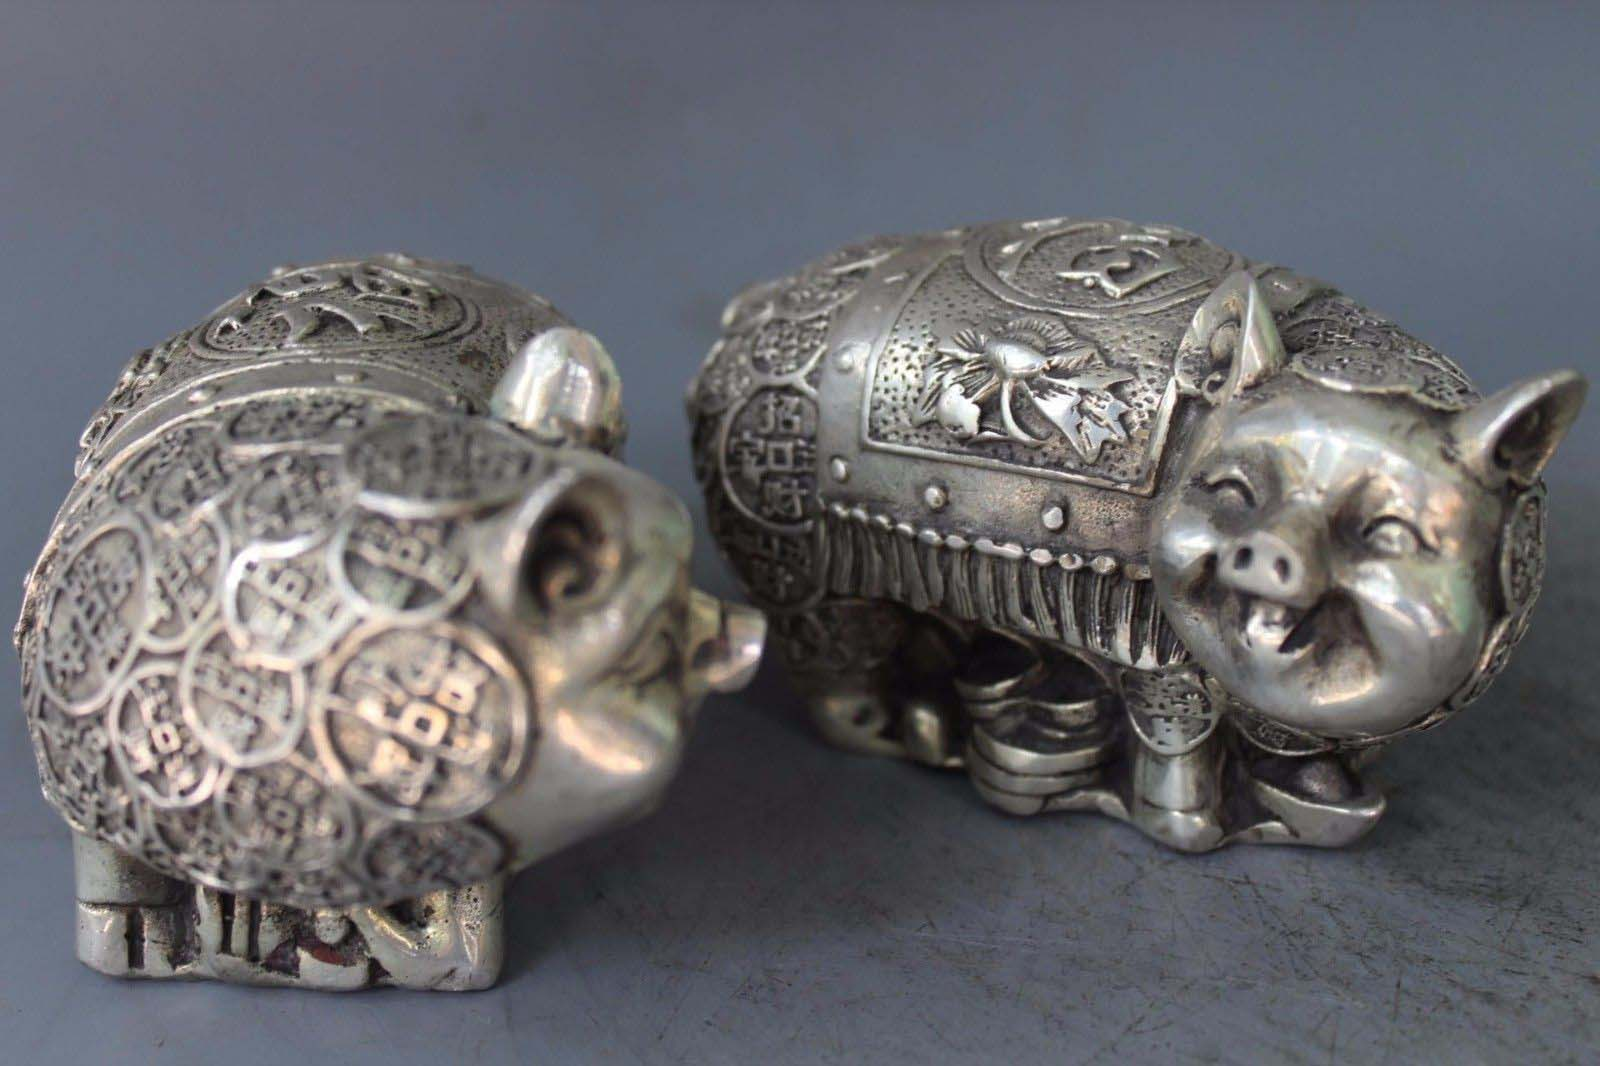 Chinese silver Wealth Money Yuanbao Pig Pigs Swine Animal Statue PairChinese silver Wealth Money Yuanbao Pig Pigs Swine Animal Statue Pair